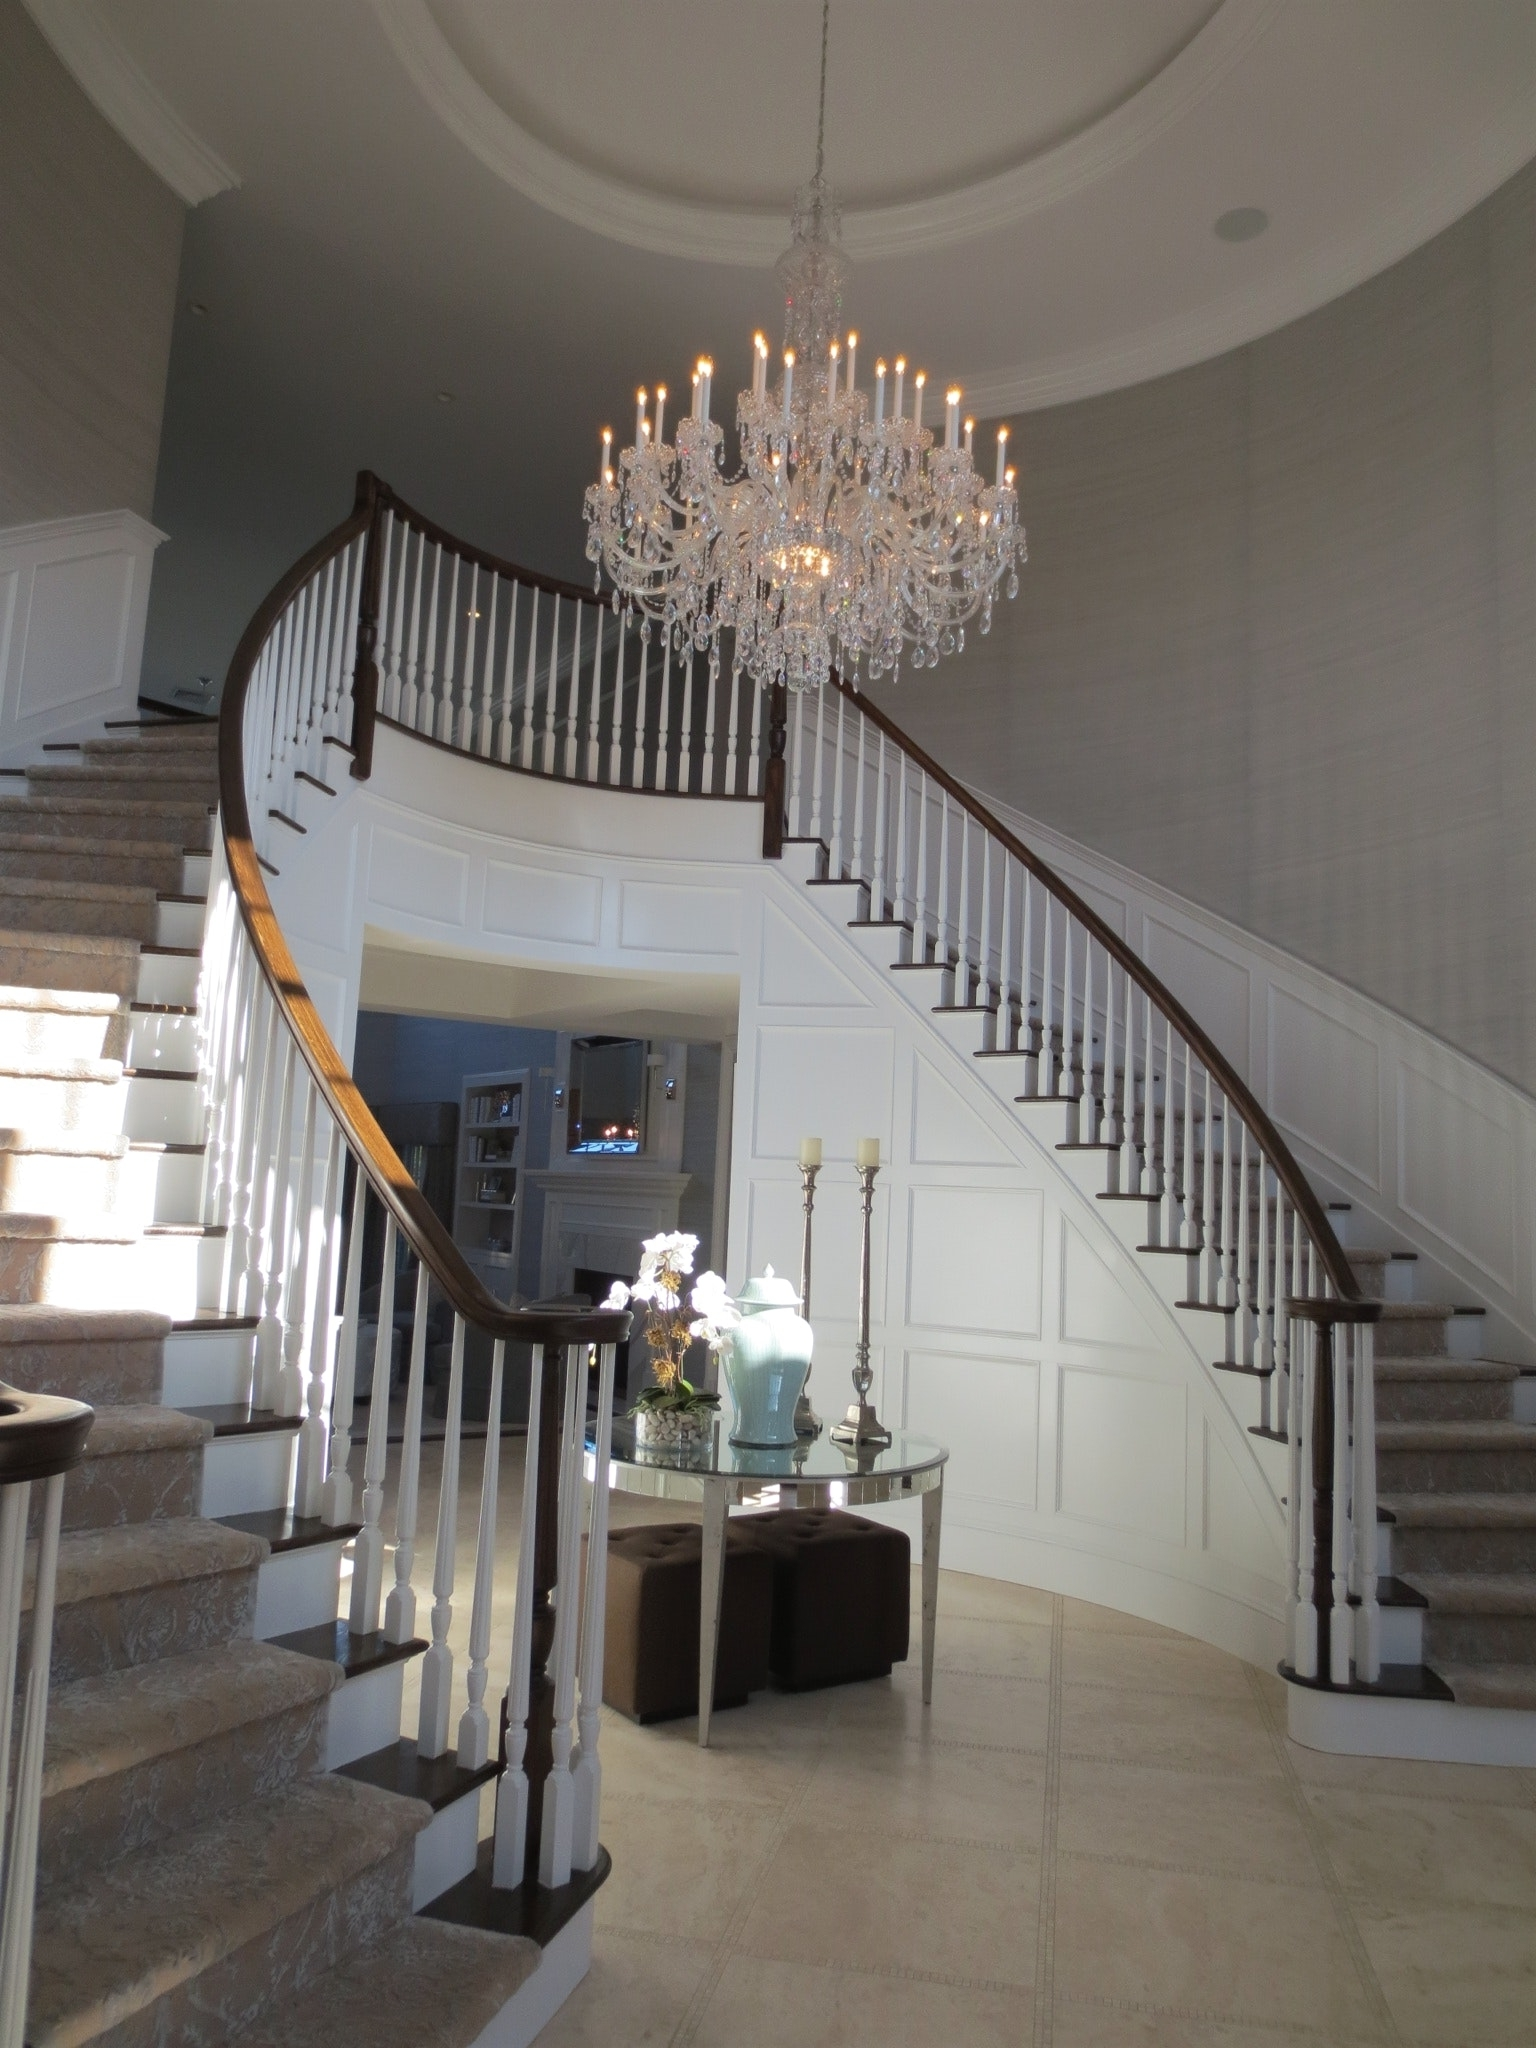 Light : Large Chandeliers For Foyers And Best Stairway Lighting Inside Well Known Stairway Chandeliers (View 8 of 20)